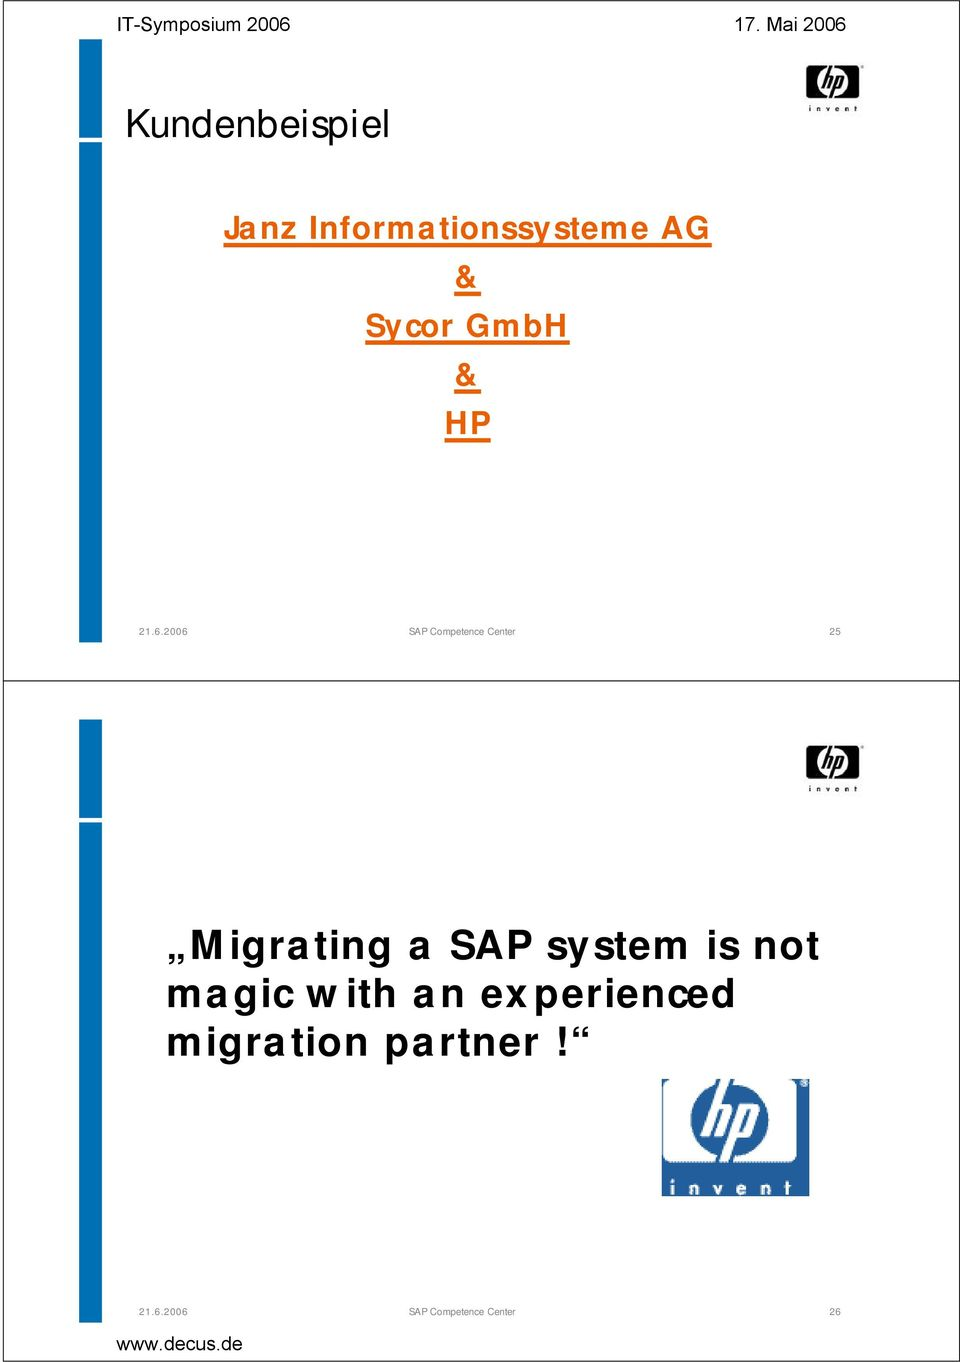 Migrating a SAP system is not magic with an